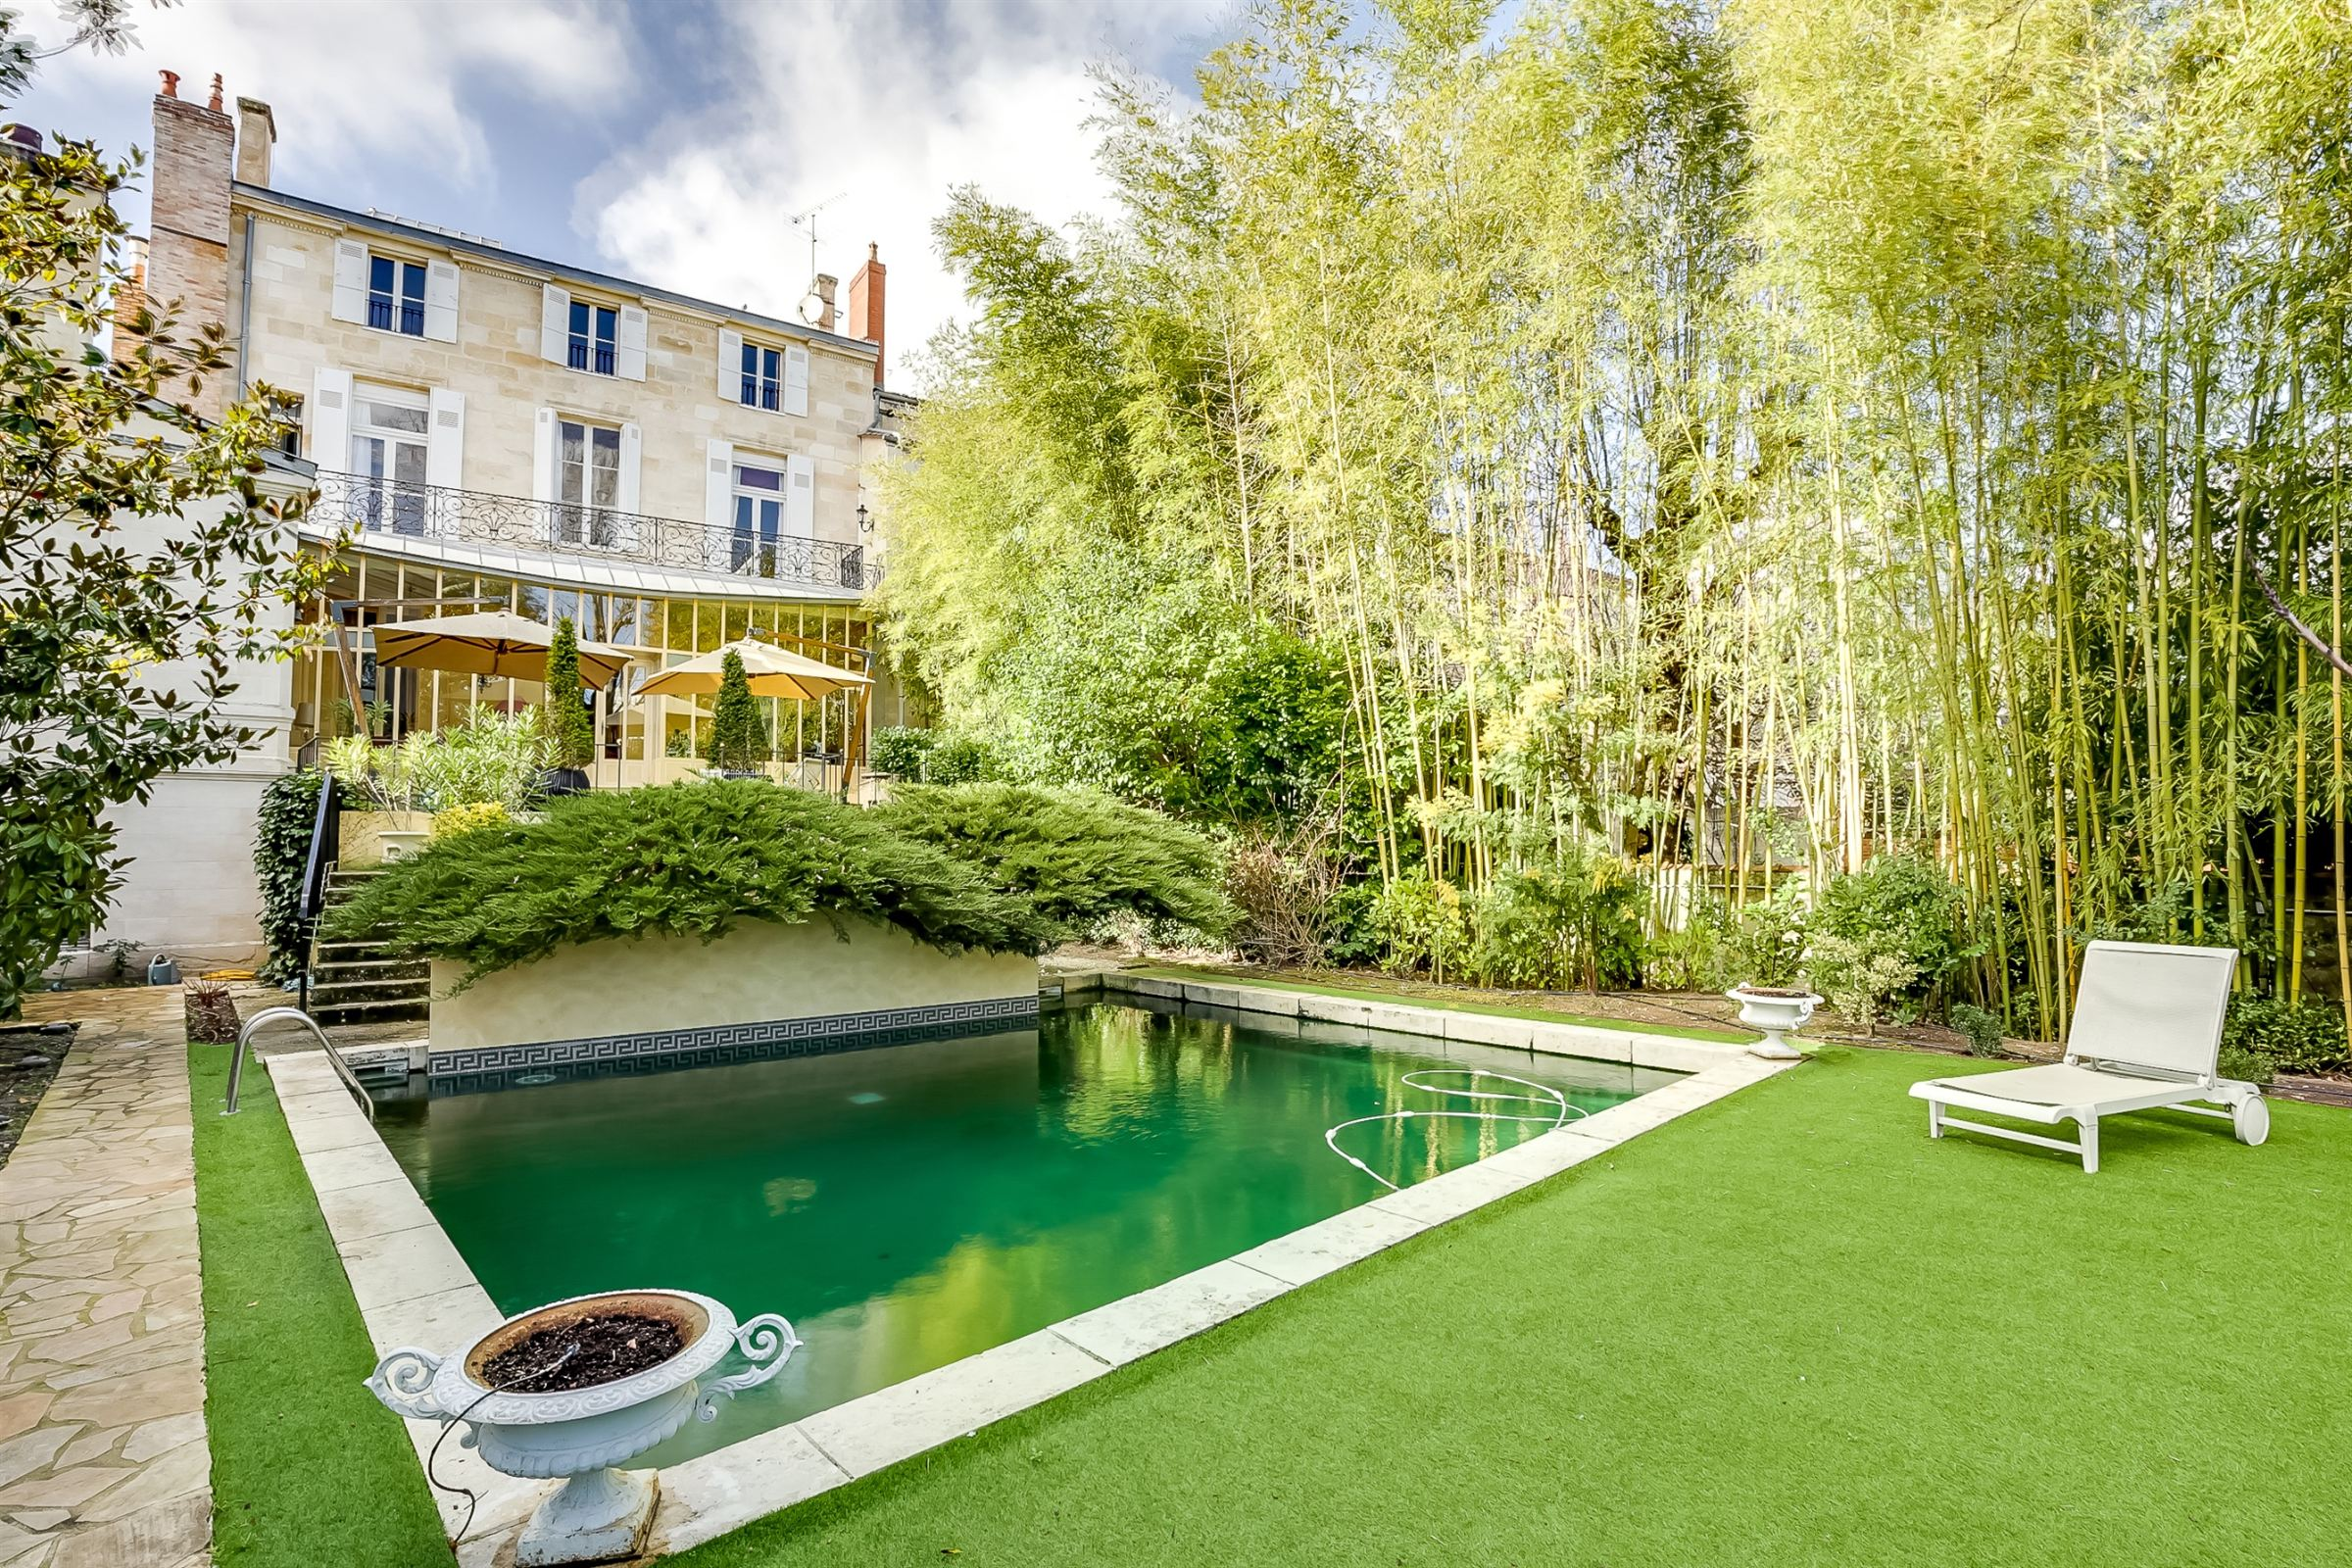 Property For Sale at BORDEAUX CENTER - LUXURY PRIVATE TOWN HOUSE - TERRACES - PARKINGS